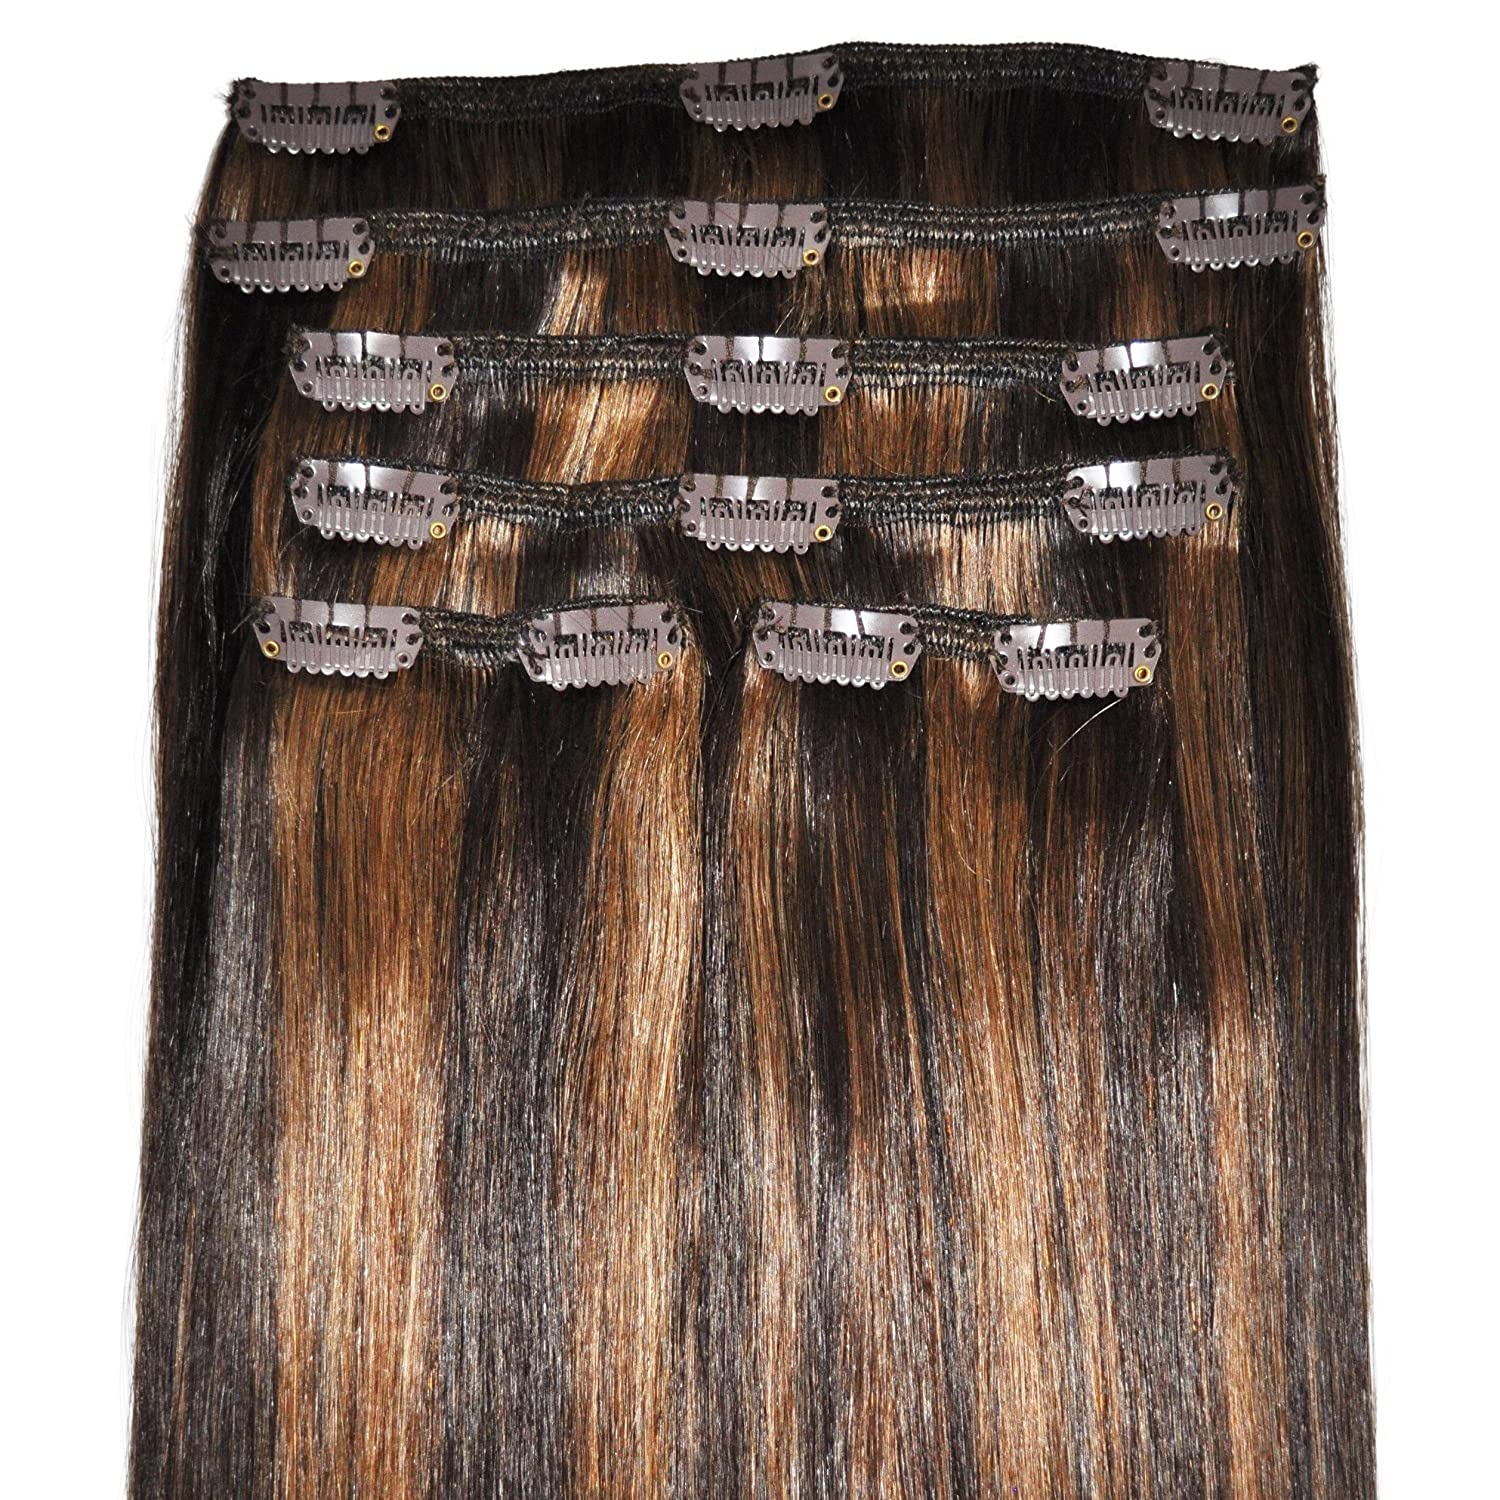 12 inch, FULL HEAD, 6pcs, Silky Soft Clip-in Hair Extensions - 100% Remy, Triple Weft, Human Hair, (100g, 2/6 Dark Brown, Brunette Balayage)